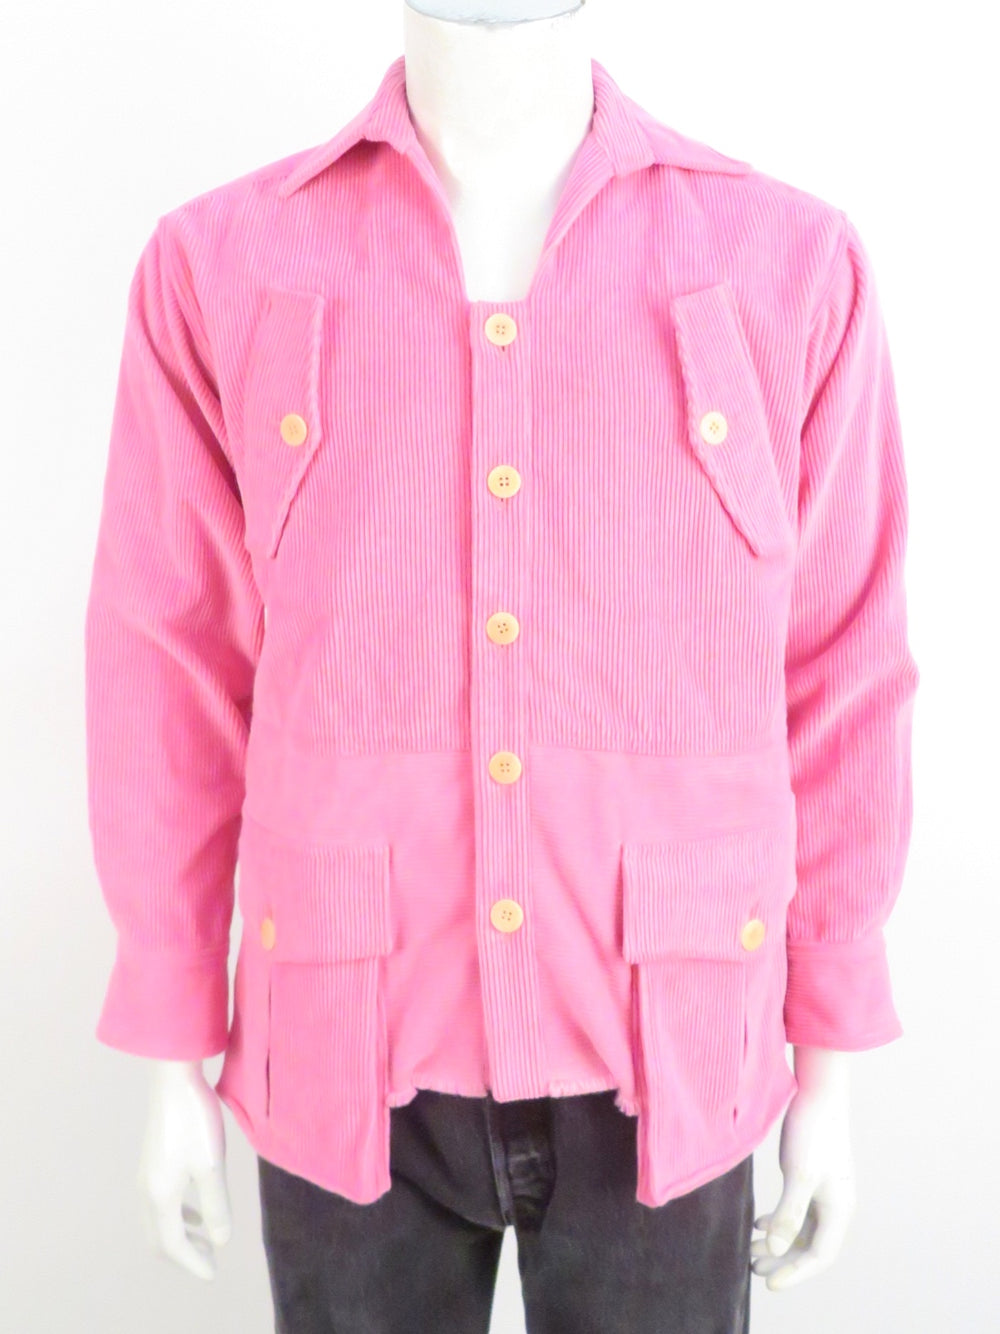 linder pink corduroy jacket. features a cropped raw hemline. front button closure with button flap pockets.